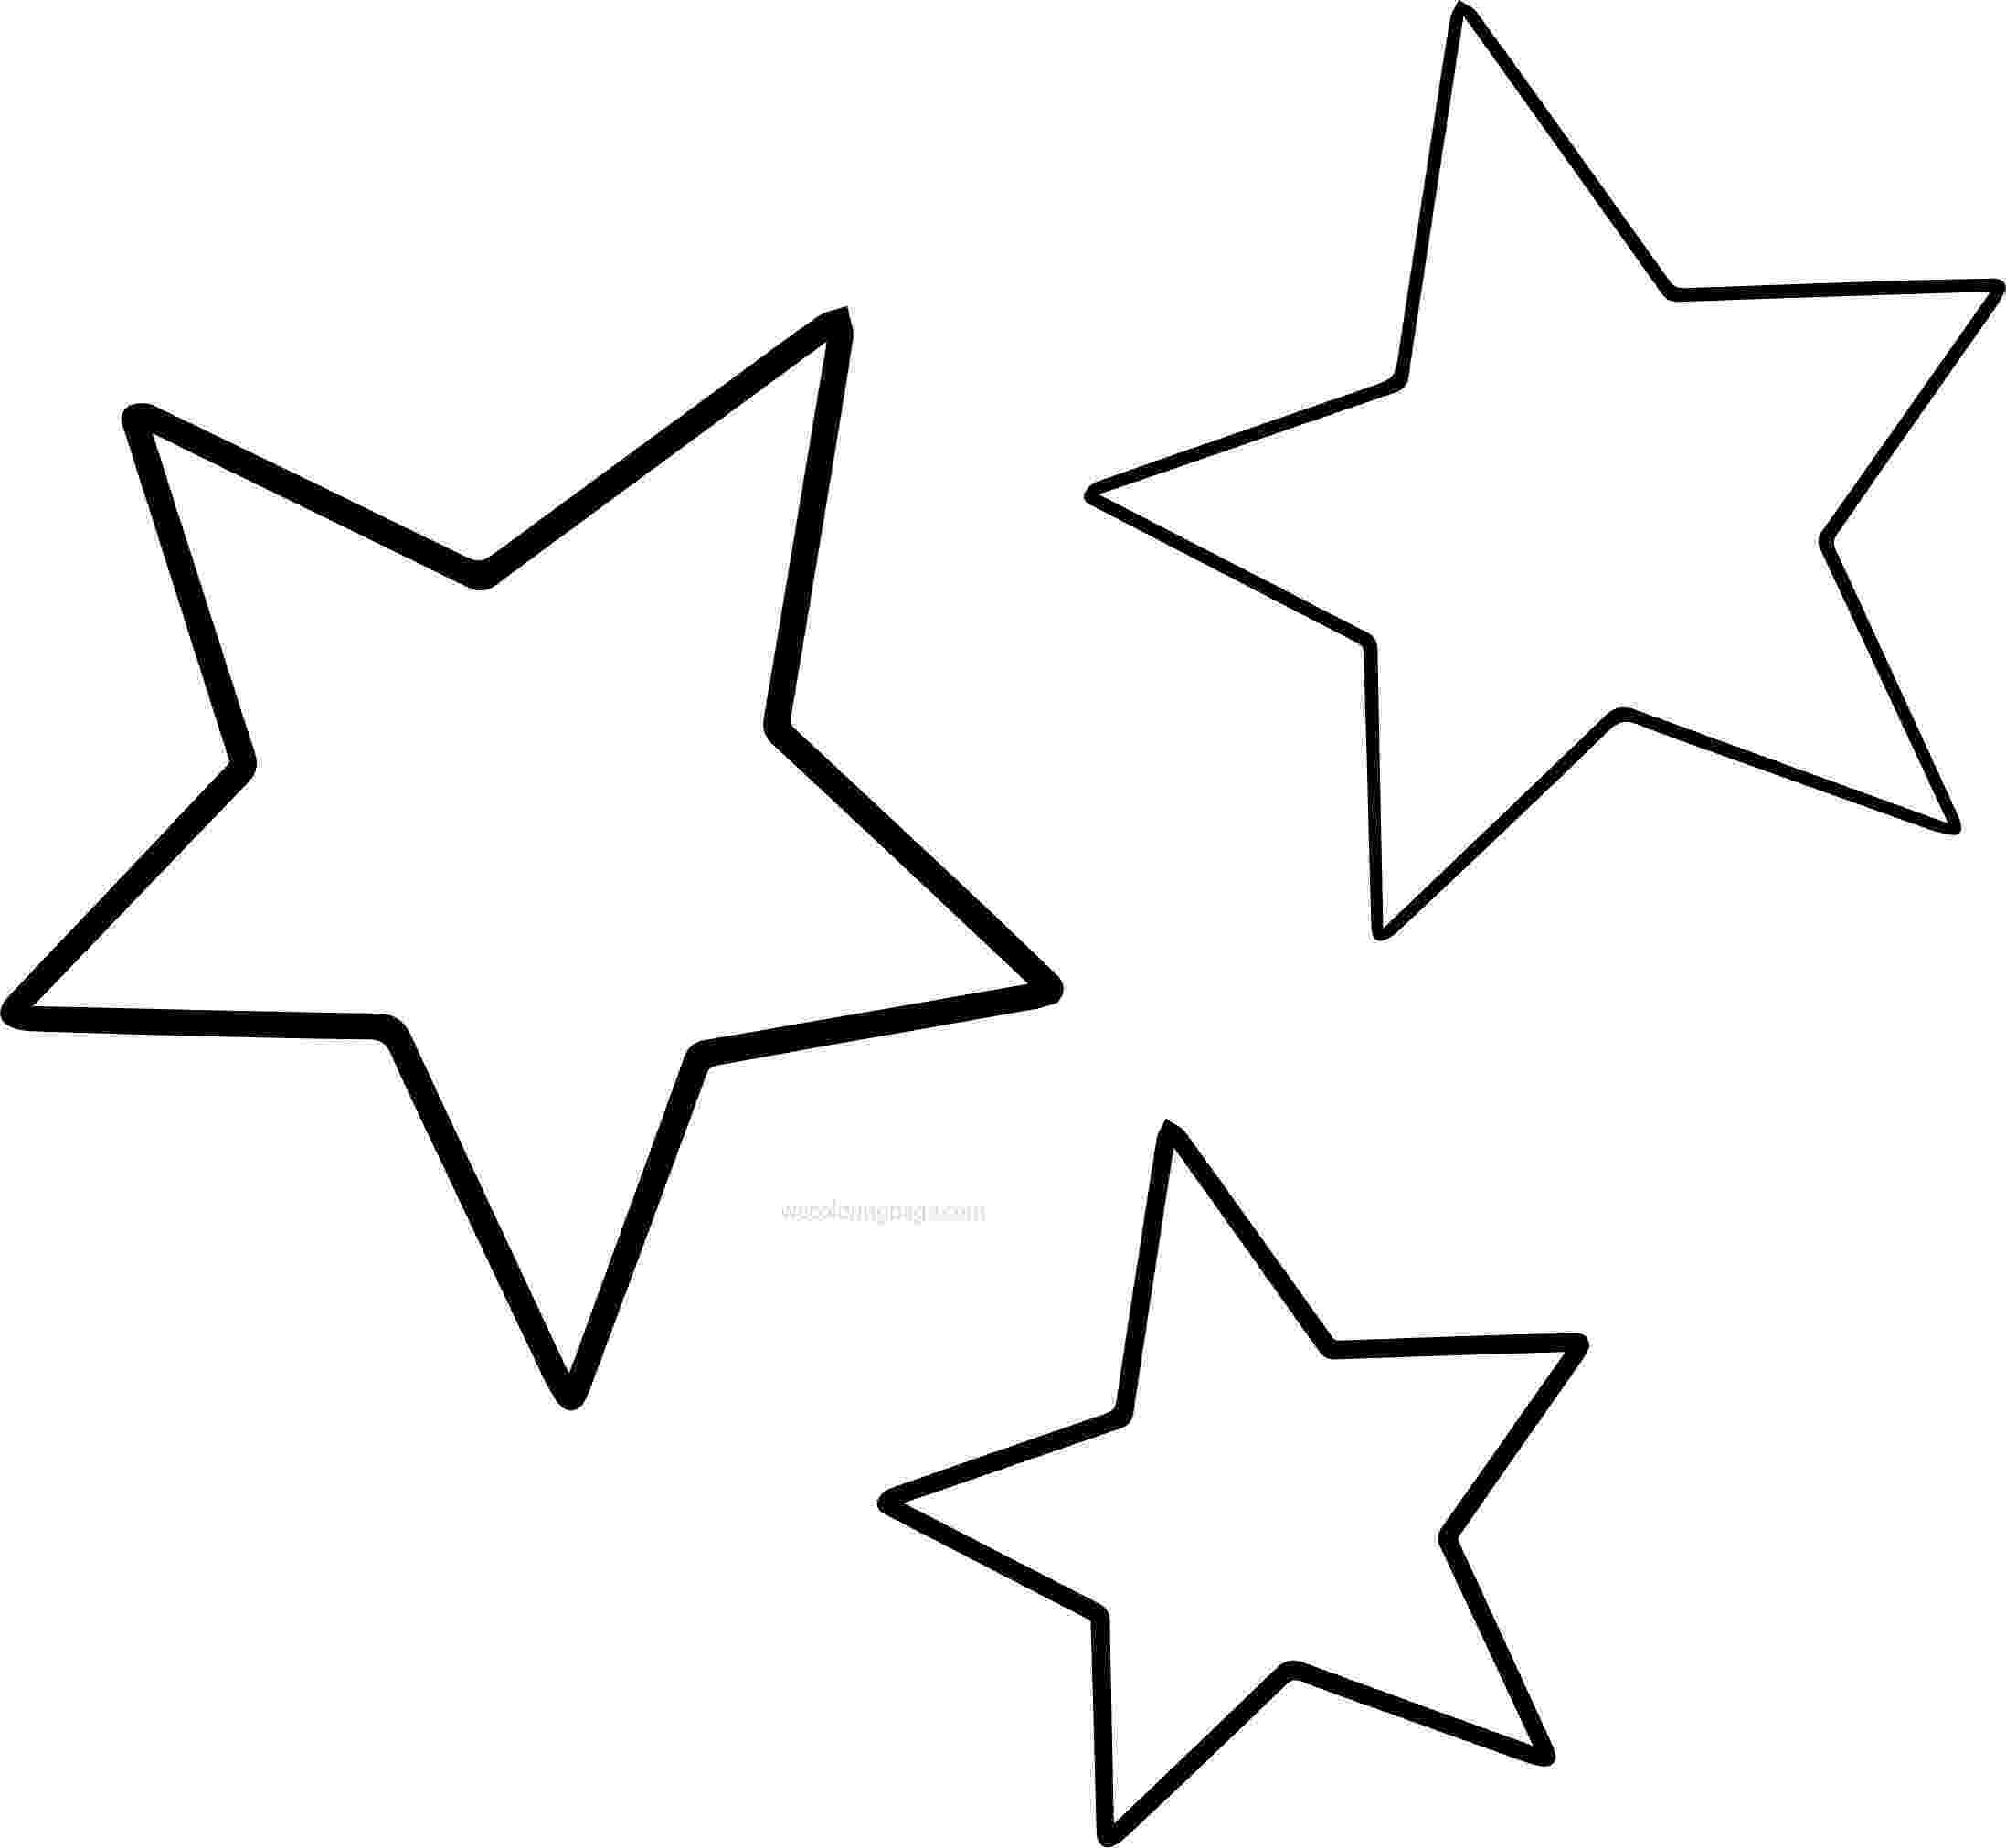 coloring page stars free printable star coloring pages for kids page stars coloring 1 1